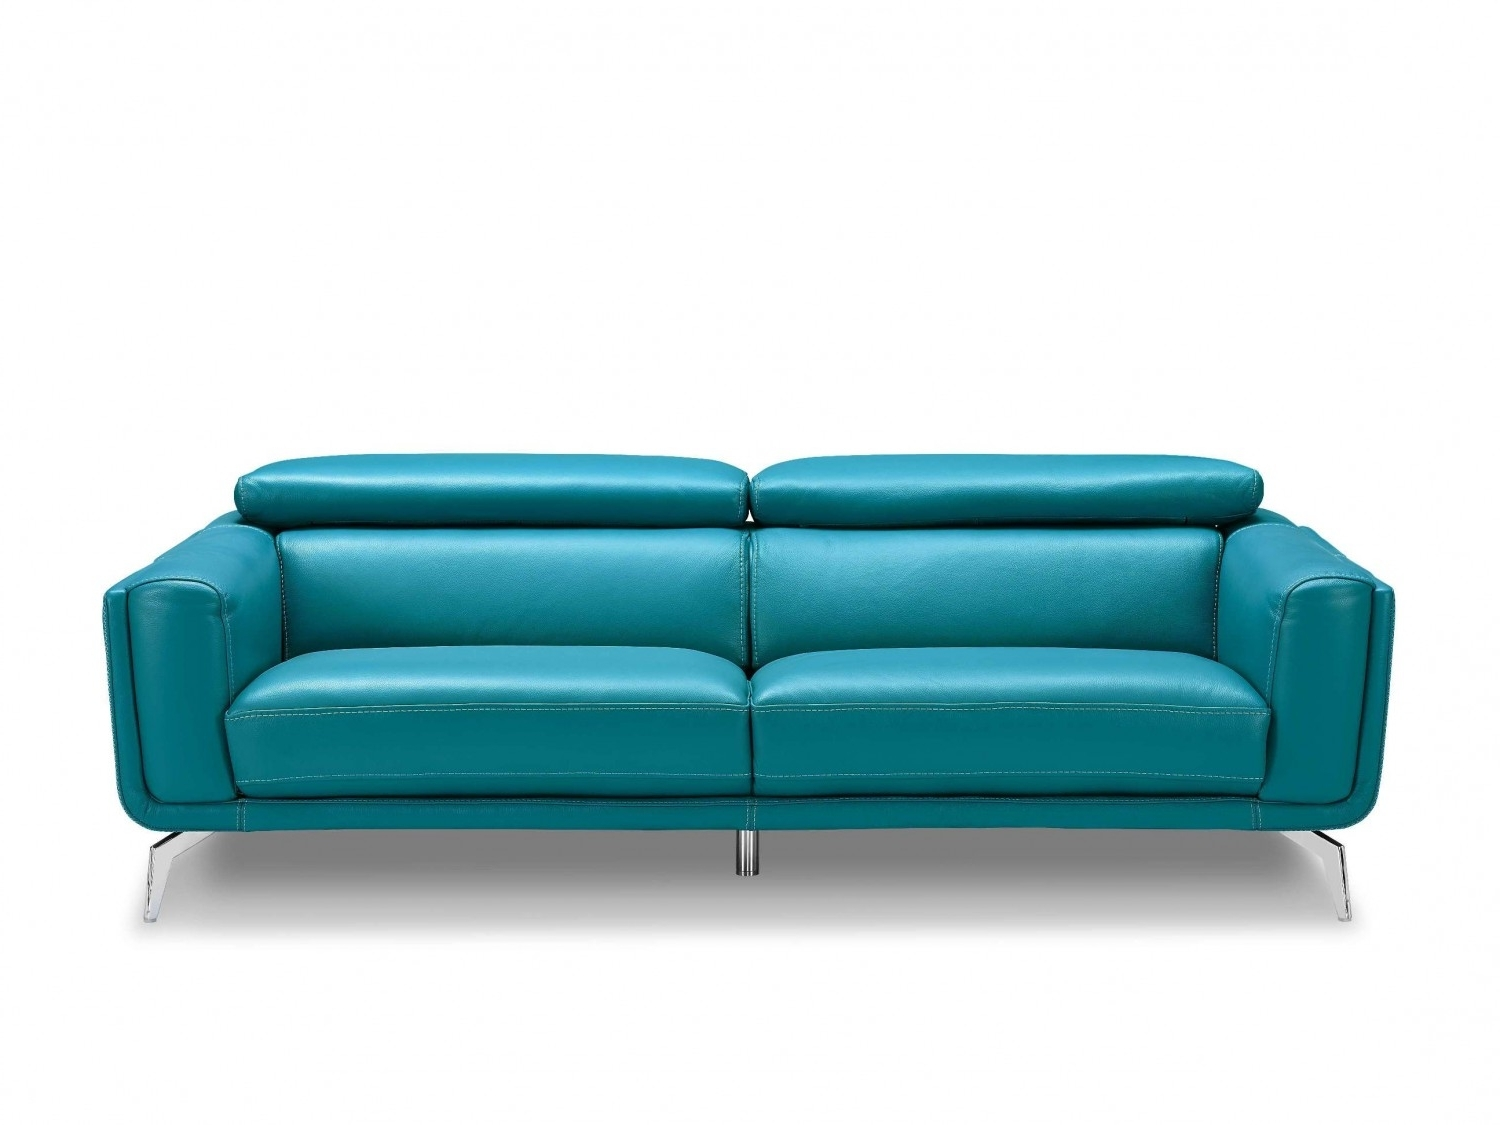 Turquoise Sofas Throughout Recent Sprint Blue Leather Sofa, High Density Foam Sofas, Stainless Steel (View 4 of 15)